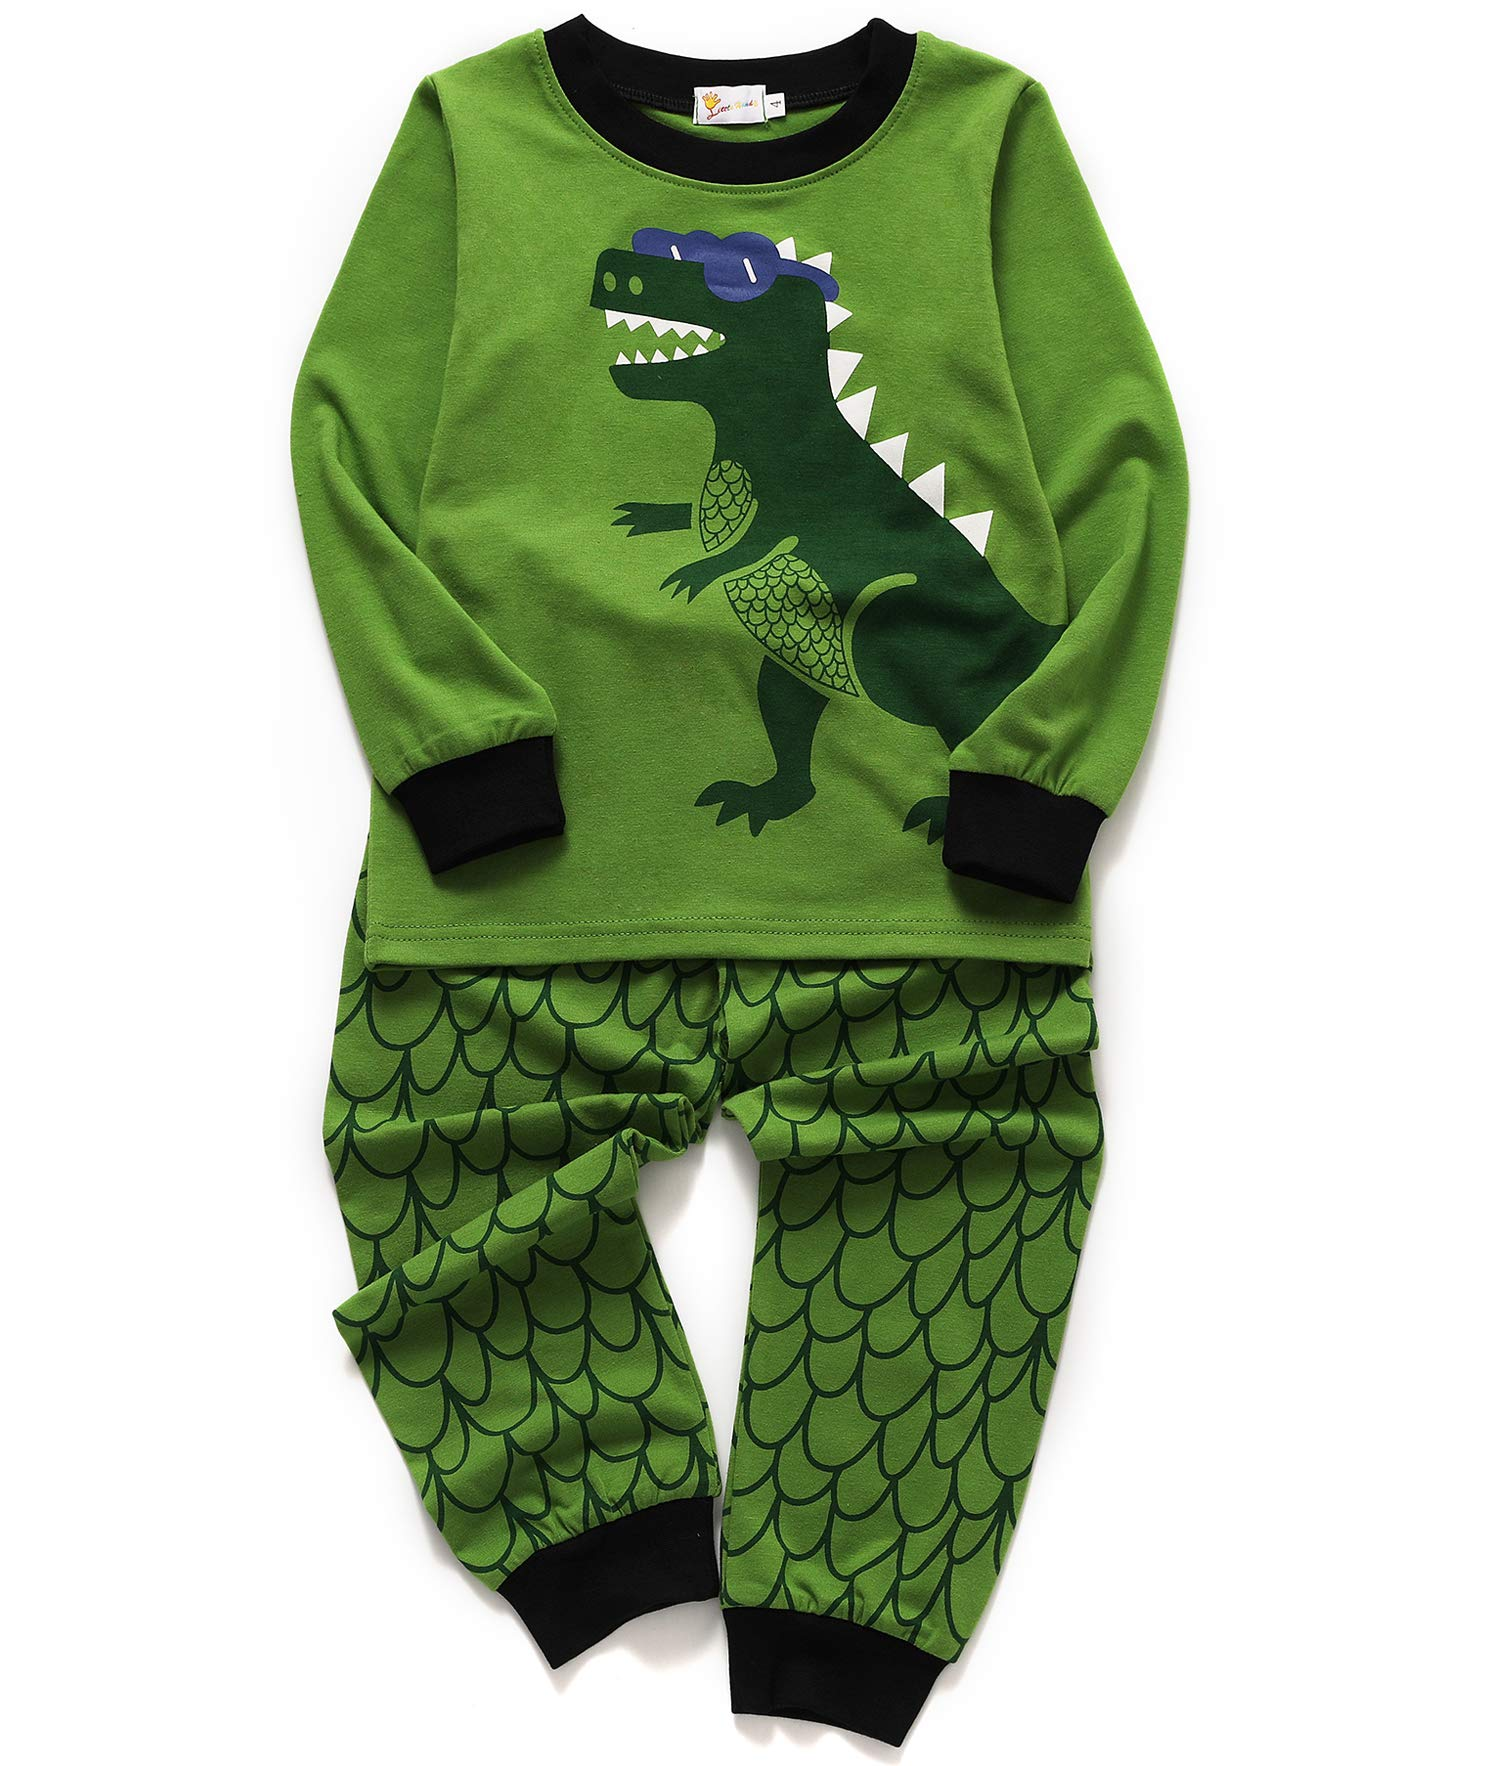 Tecrok Toddler Boys Cotton Pjs Cute Dinosaur Pajama Set Cartoon Sleepwear